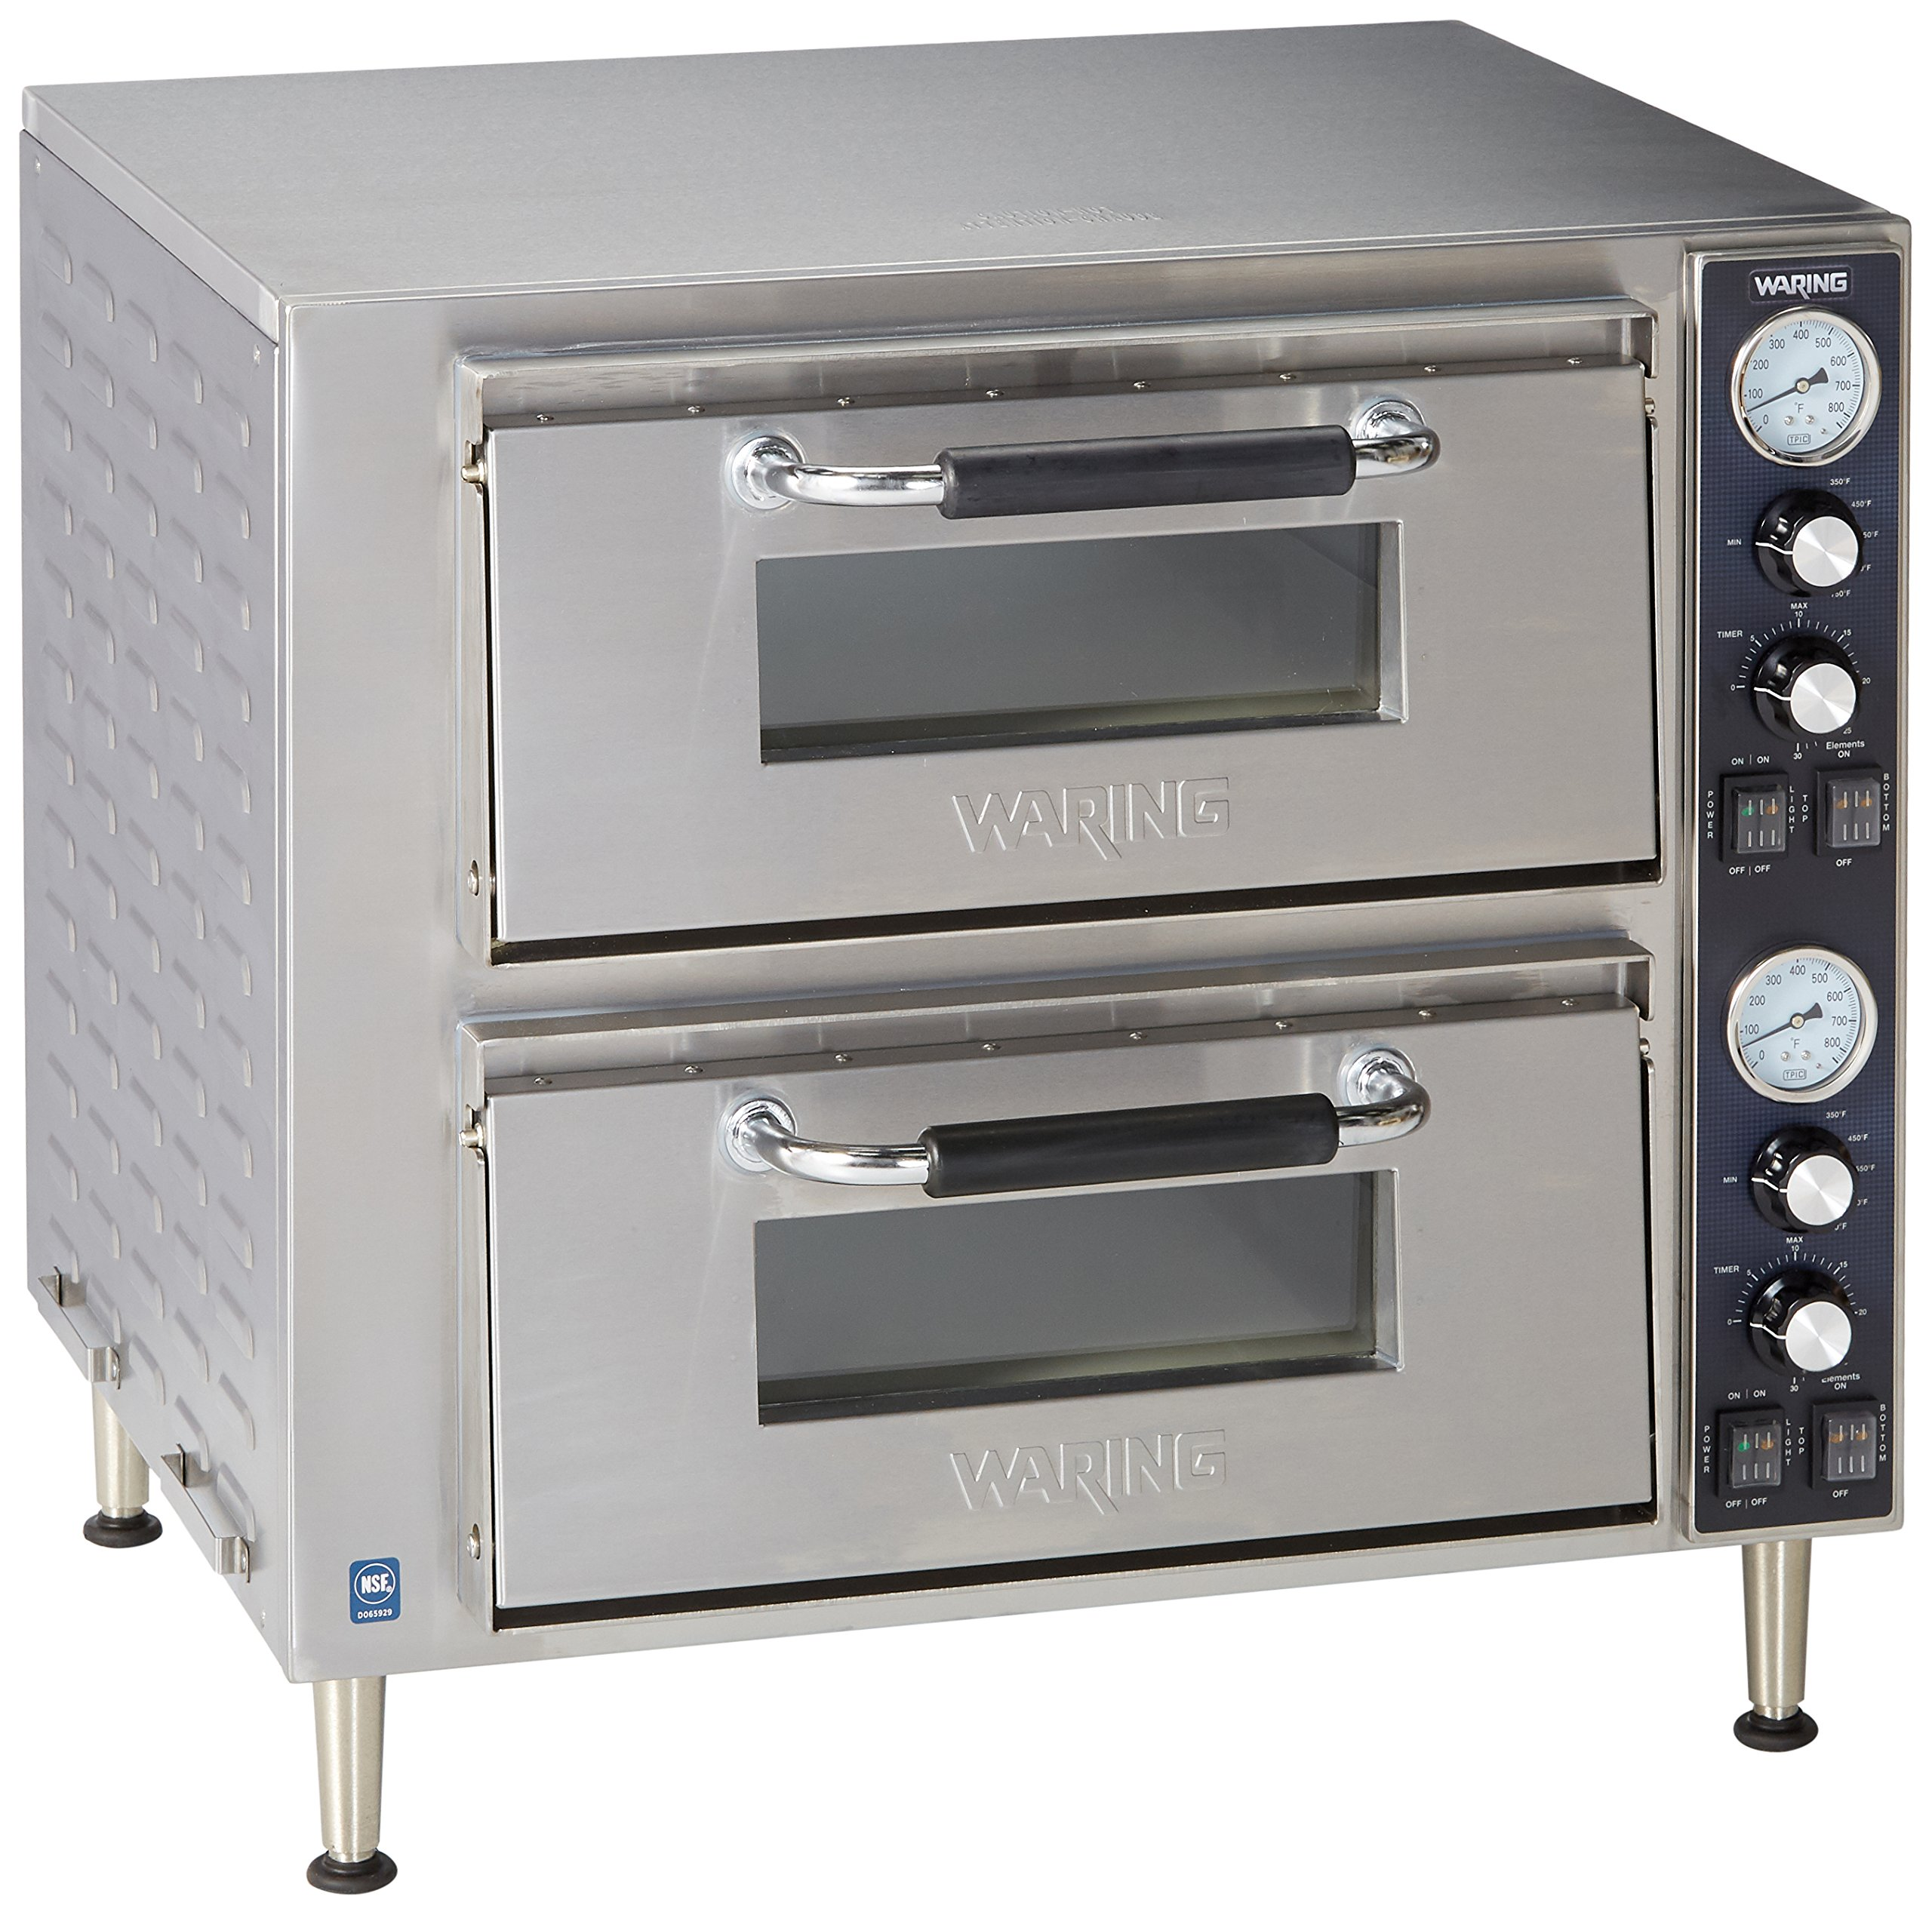 Waring Commercial WPO750 Double Deck Pizza Oven with Dual Door, Silver by Waring